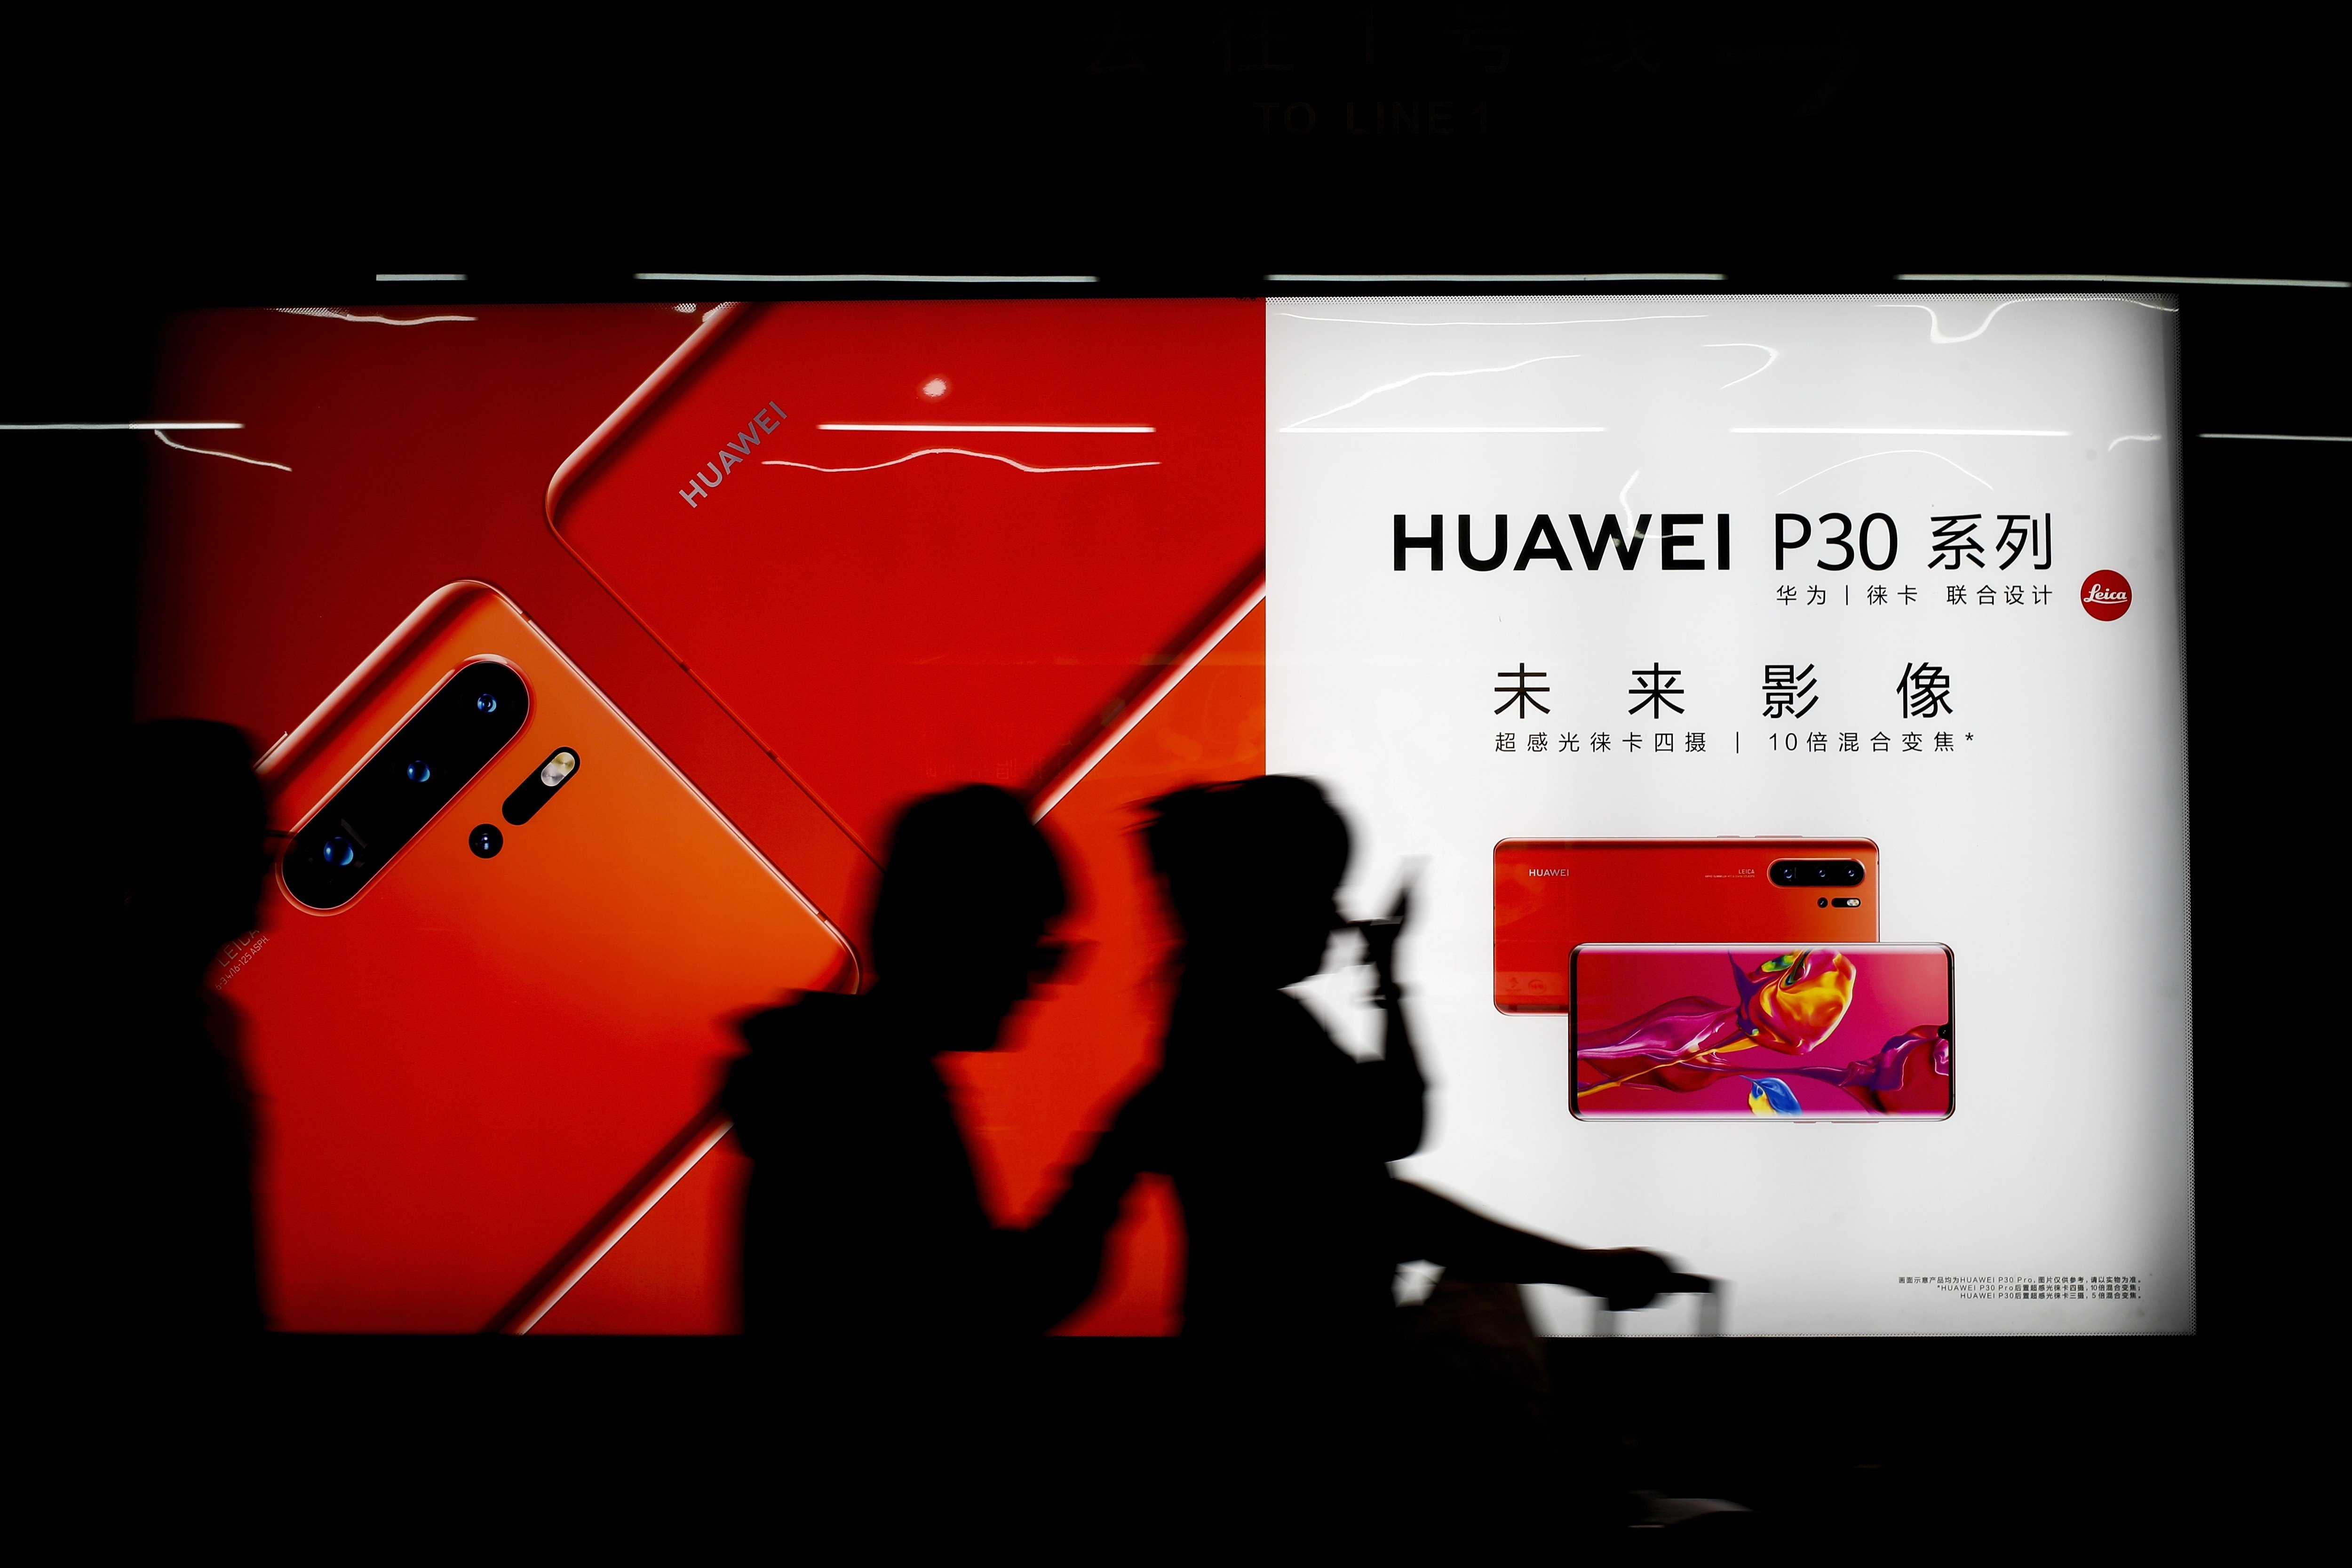 US may scale back restrictions on China's Huawei after